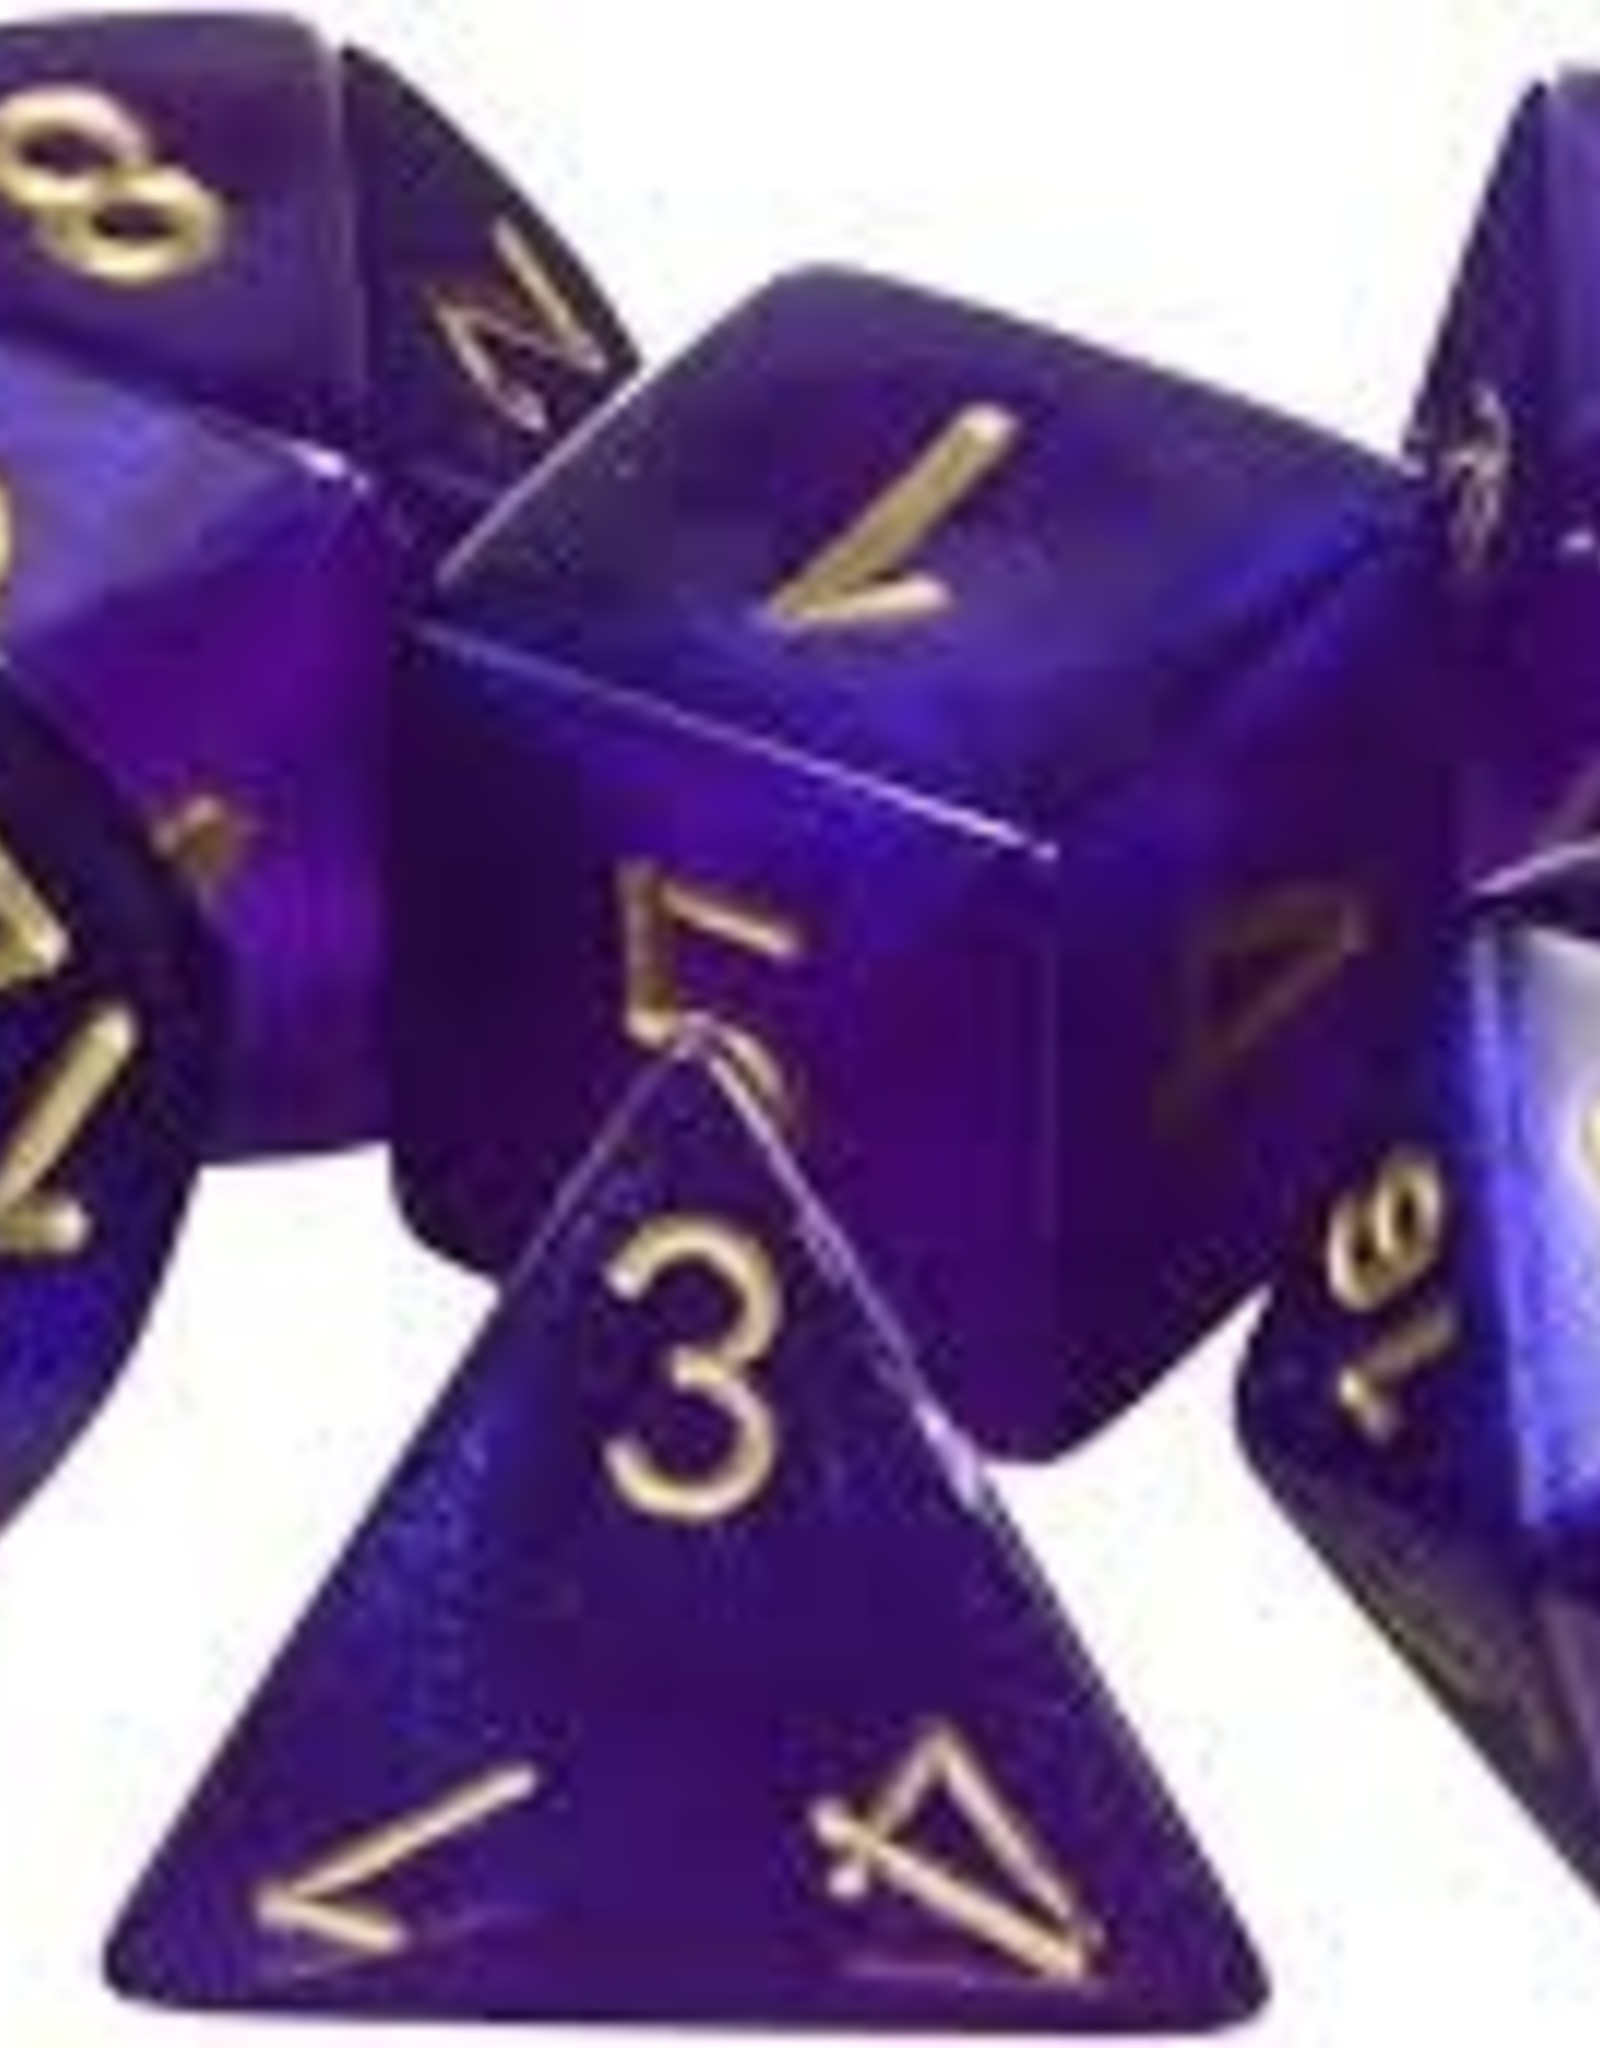 Chessex Borealis Poly 7 set: Royal Purple w/ Gold